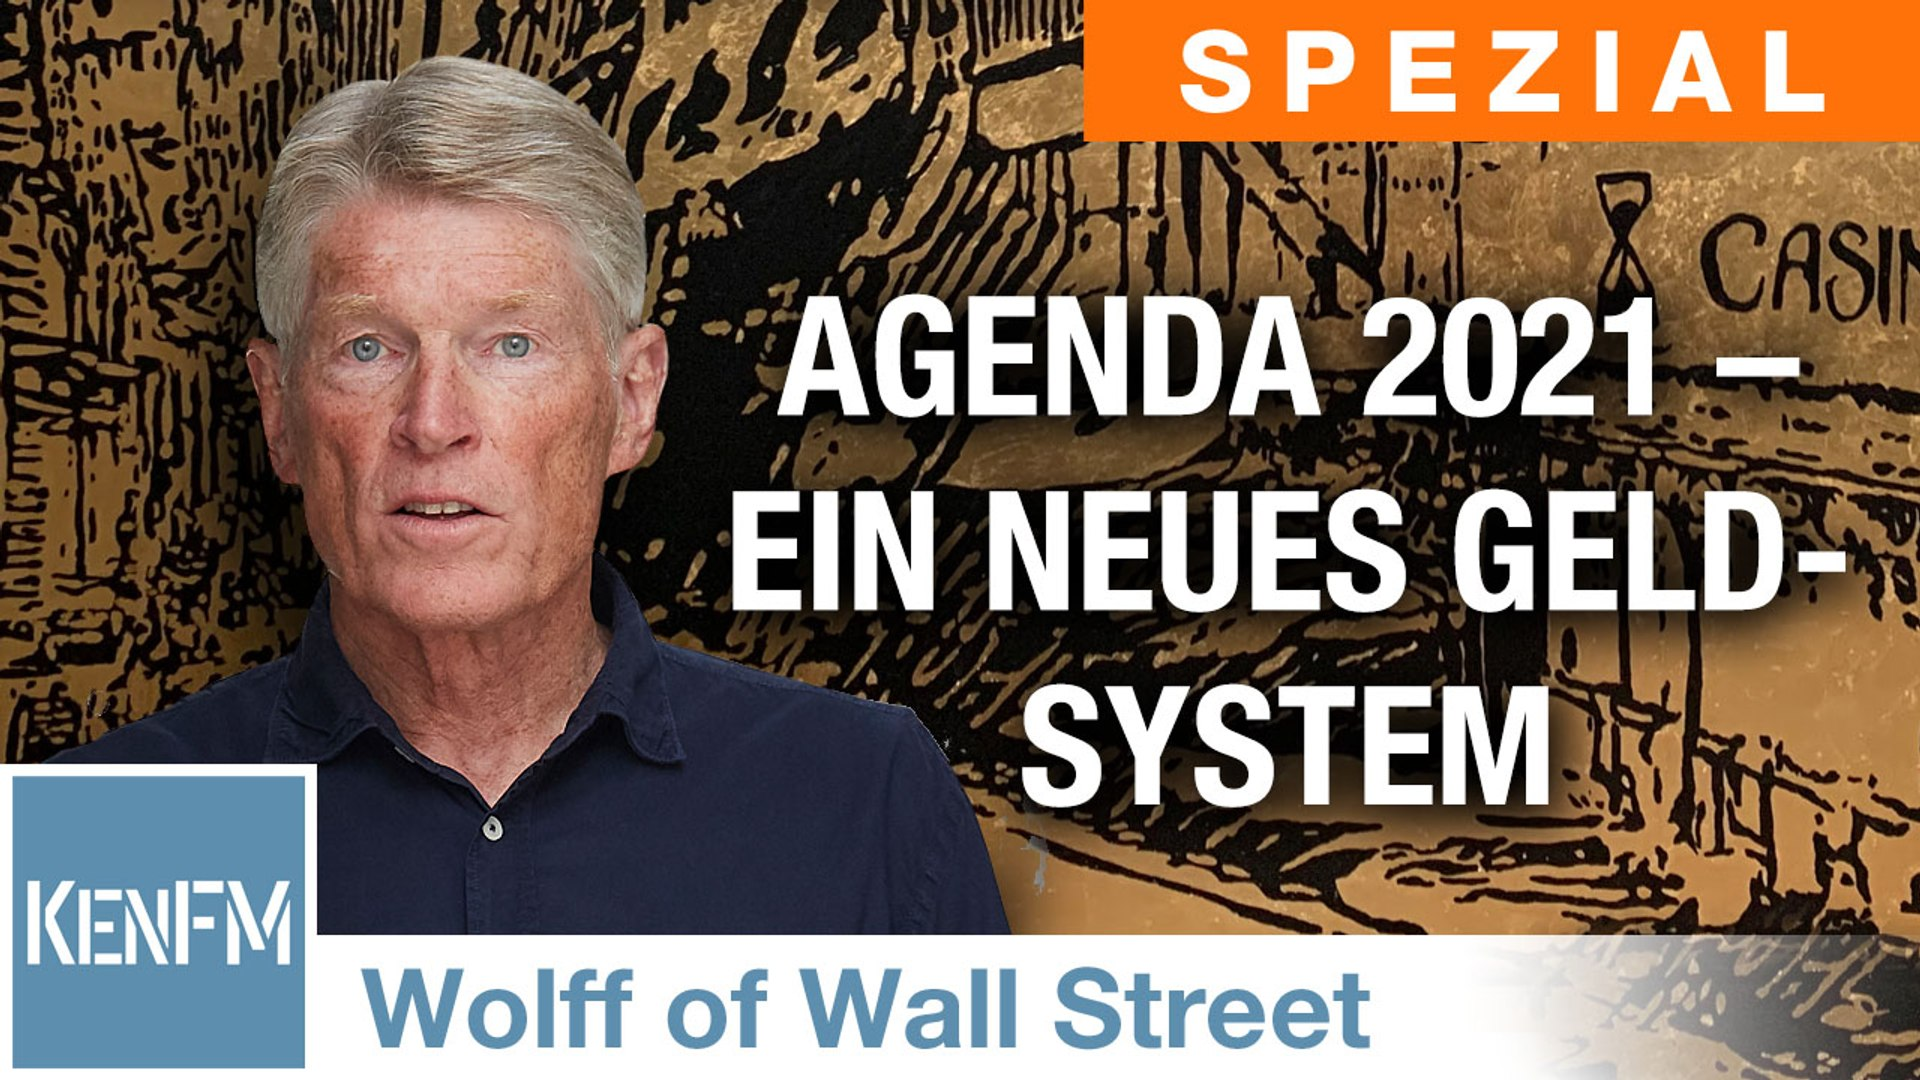 The Wolff of Wall Street SPEZIAL: Agenda 2021 – Ein neues Geldsystem